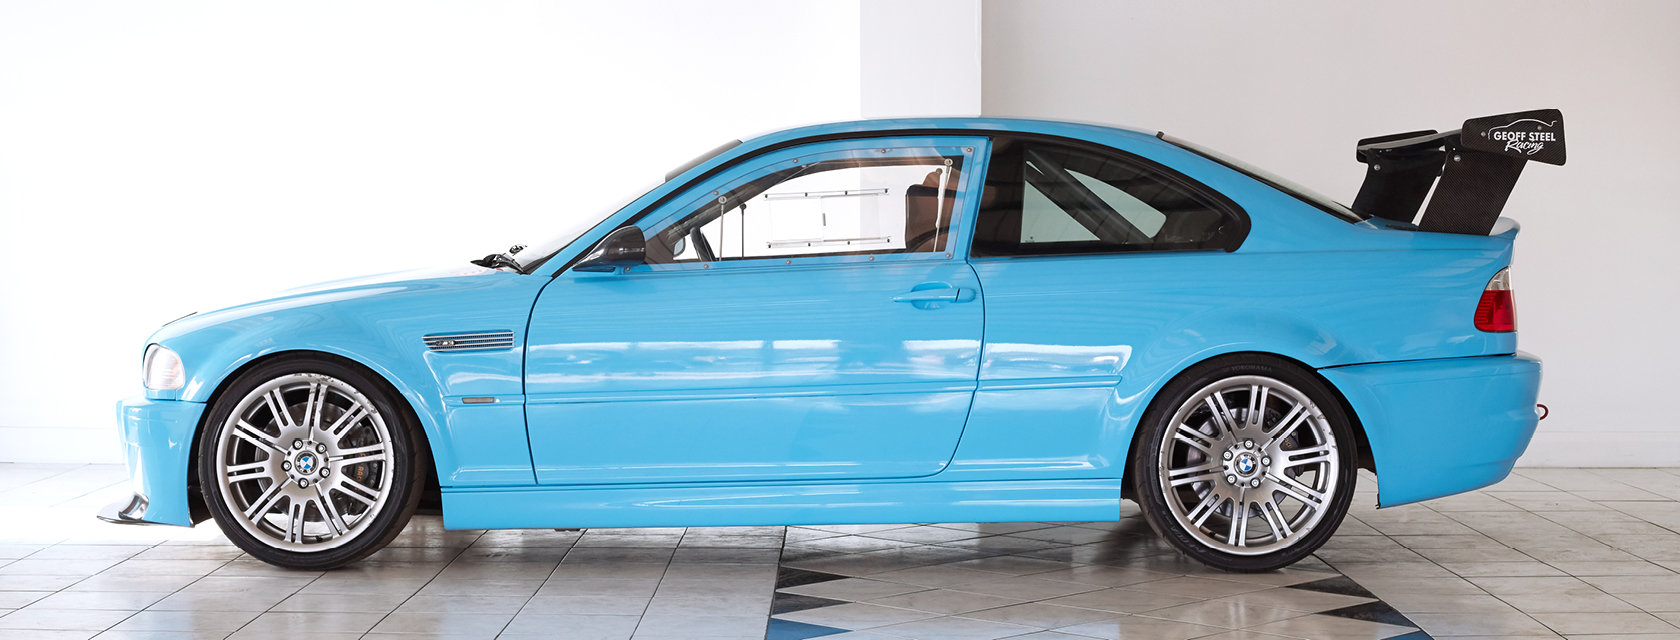 2003 BMW M3 ROAD LEGAL TRACK/RACE CAR For Sale (picture 3 of 10)